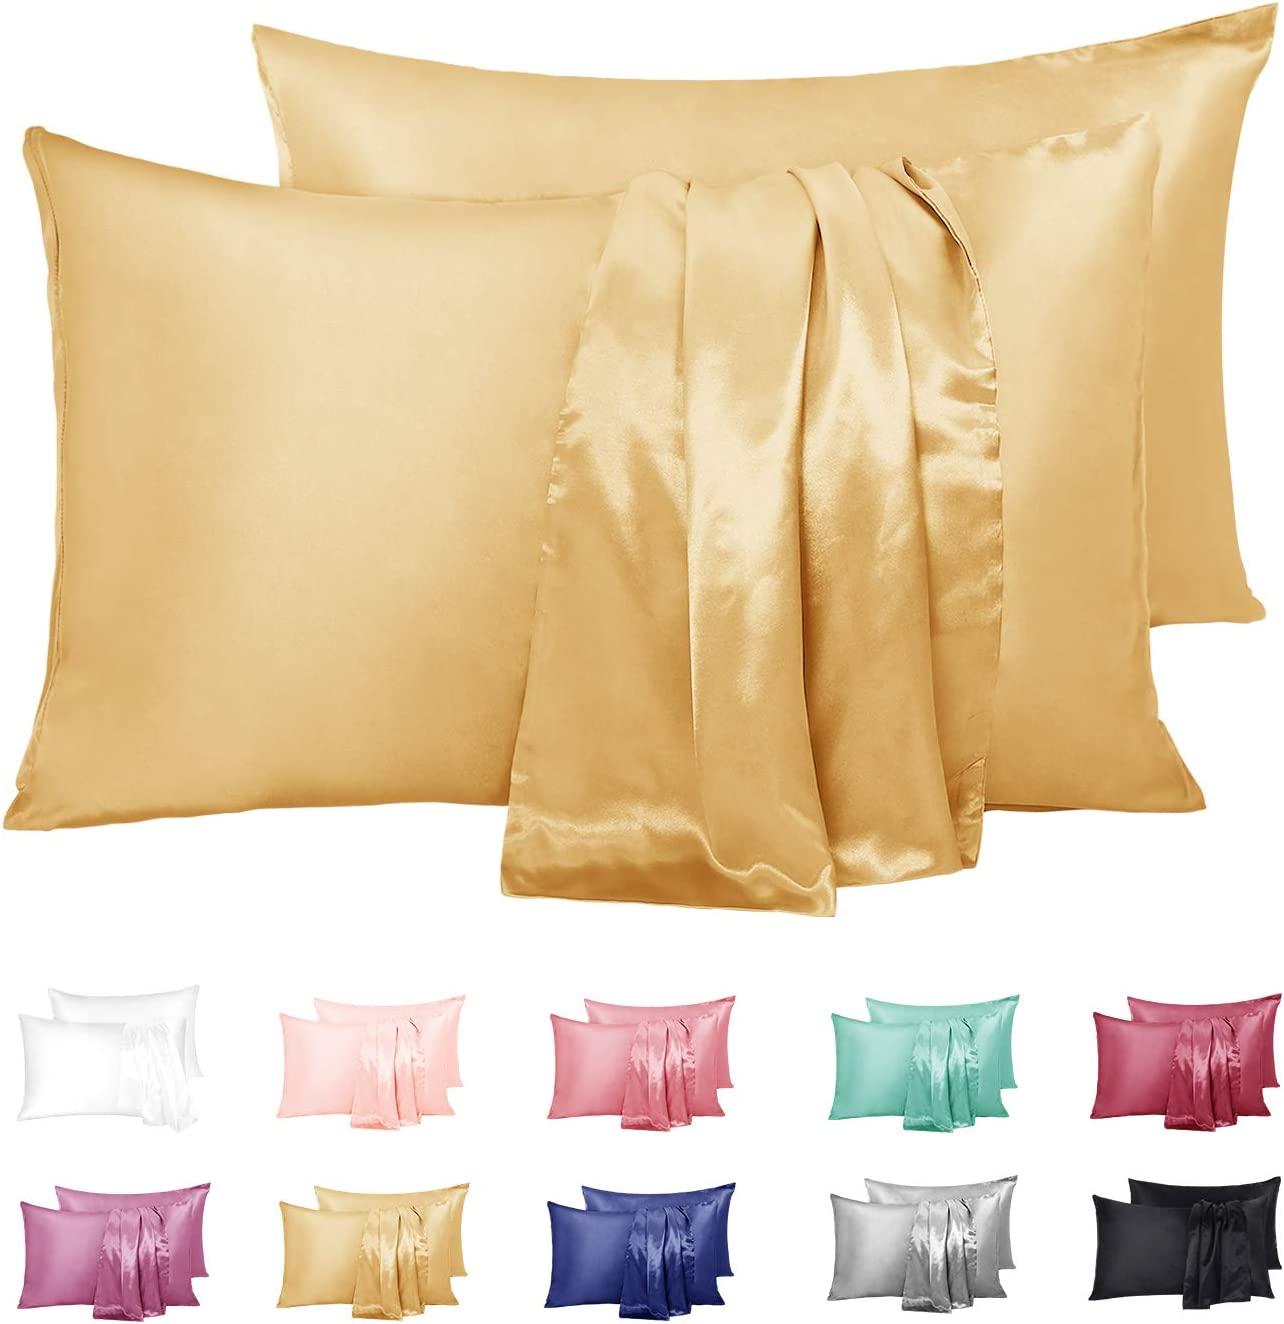 """Duerer Satin Pillowcase 2 Pack for Hair and Skin, Soft Pillow Cases Covers with Envelope Closure, Standard/Queen/King Size(20""""x30"""",Gold)"""